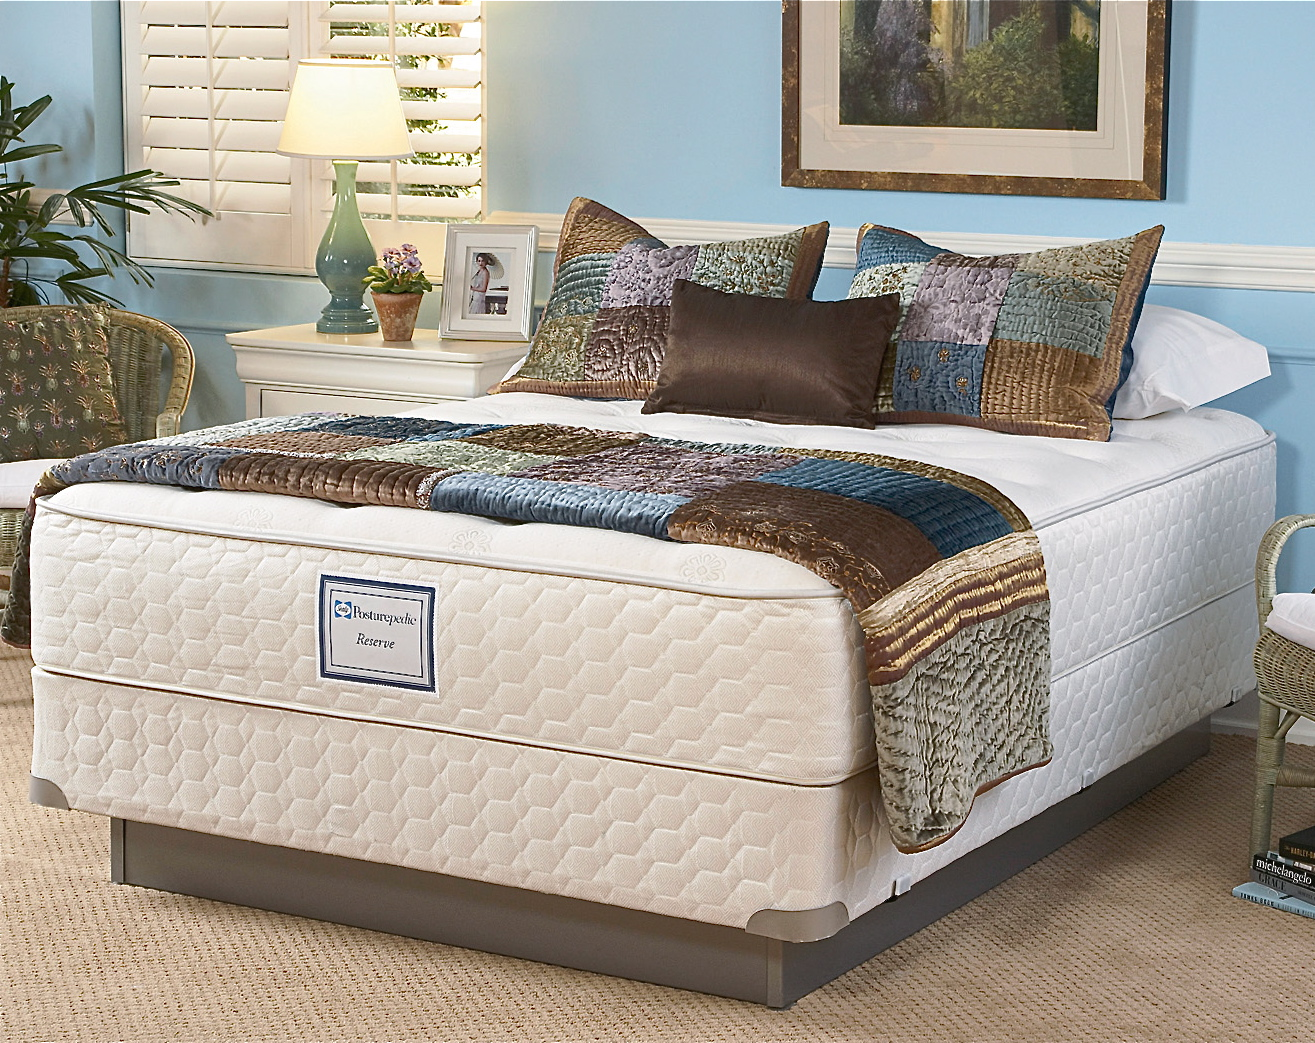 square reinholt town sealy index cfm indiana mattresses warsaw s showroom furniture mattress